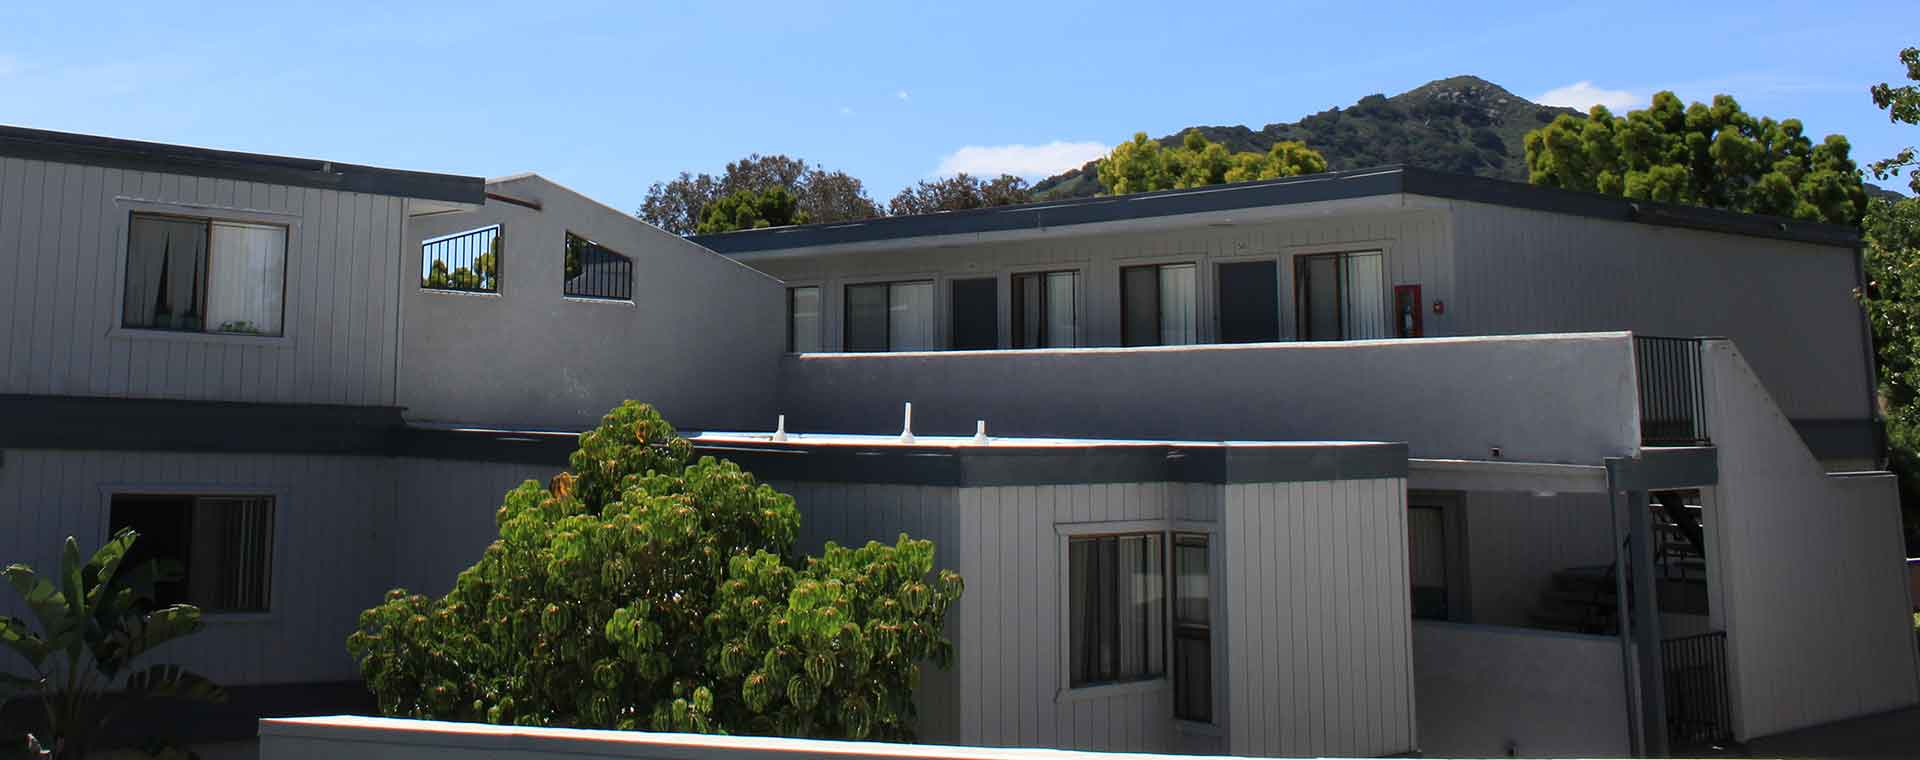 MURRAY STATION APARTMENTS view